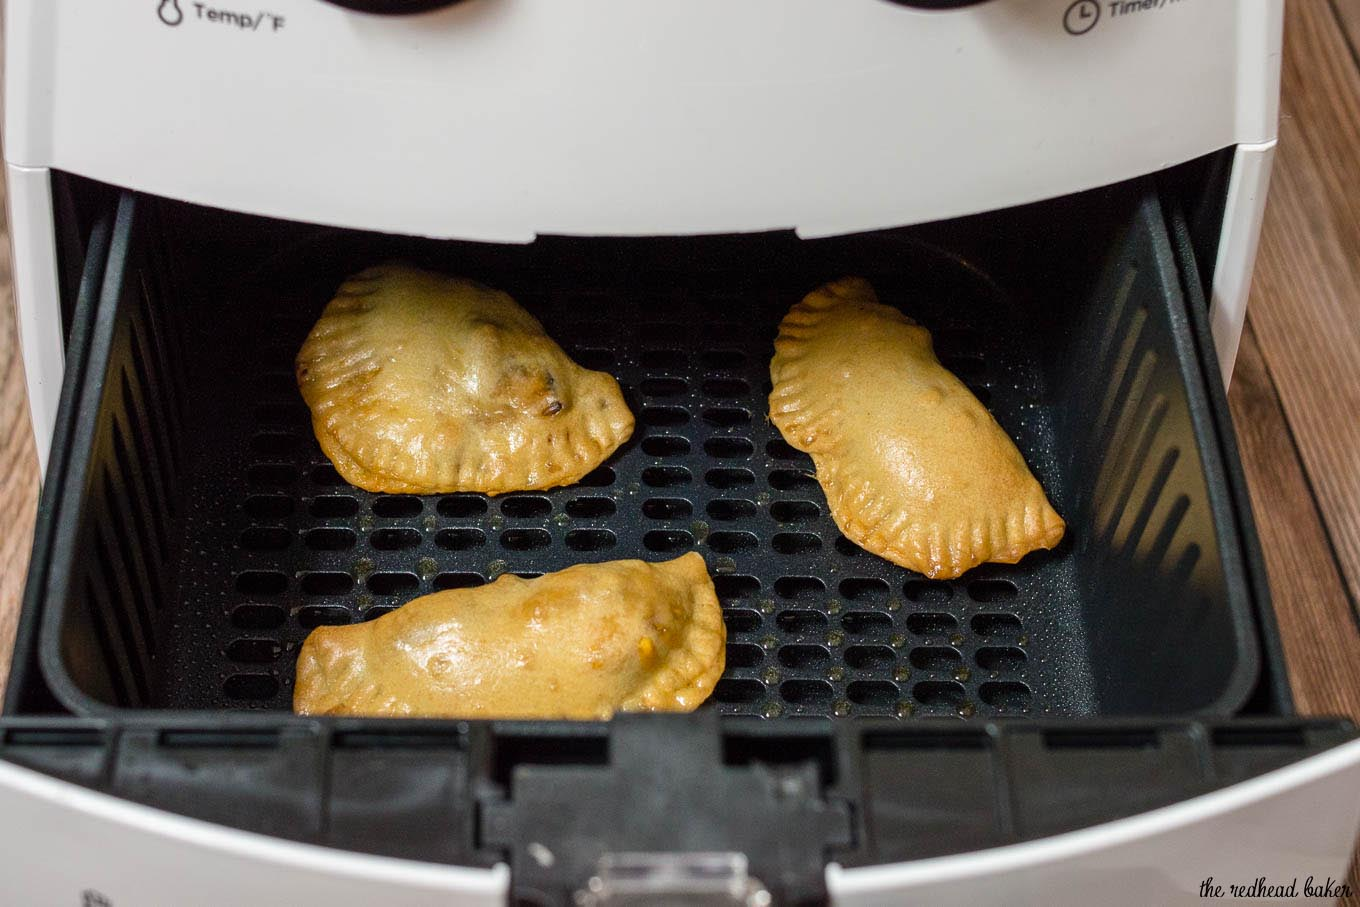 Cooked Philly cheesesteak empanadas in the basket of the air frye.r